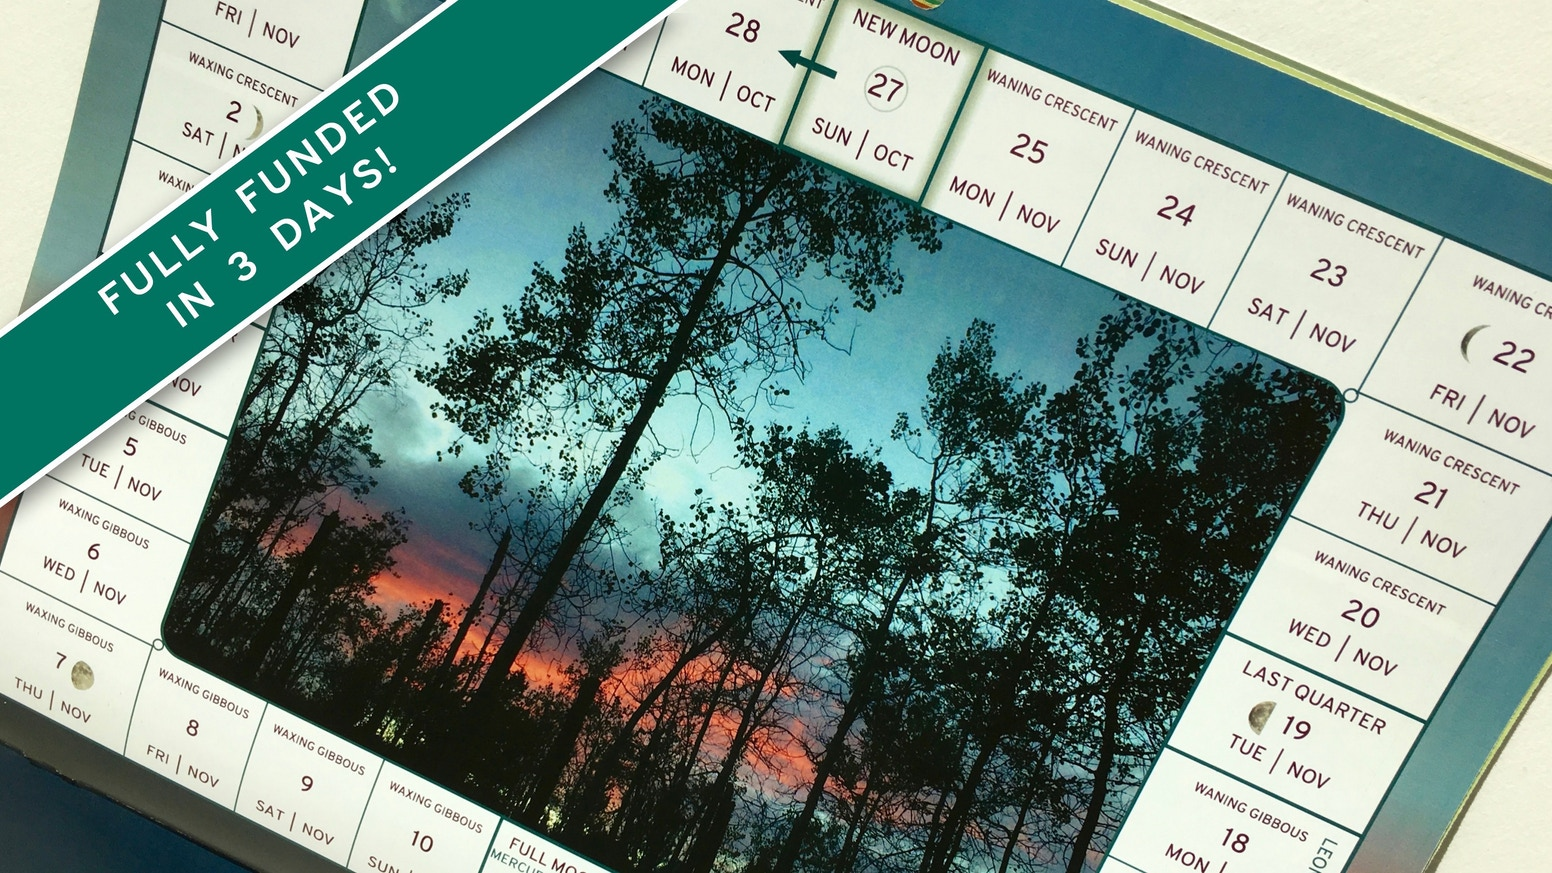 Track time with nature with this new take on a moon calendar, including seasonal produce, nature activity ideas, animal facts and more.